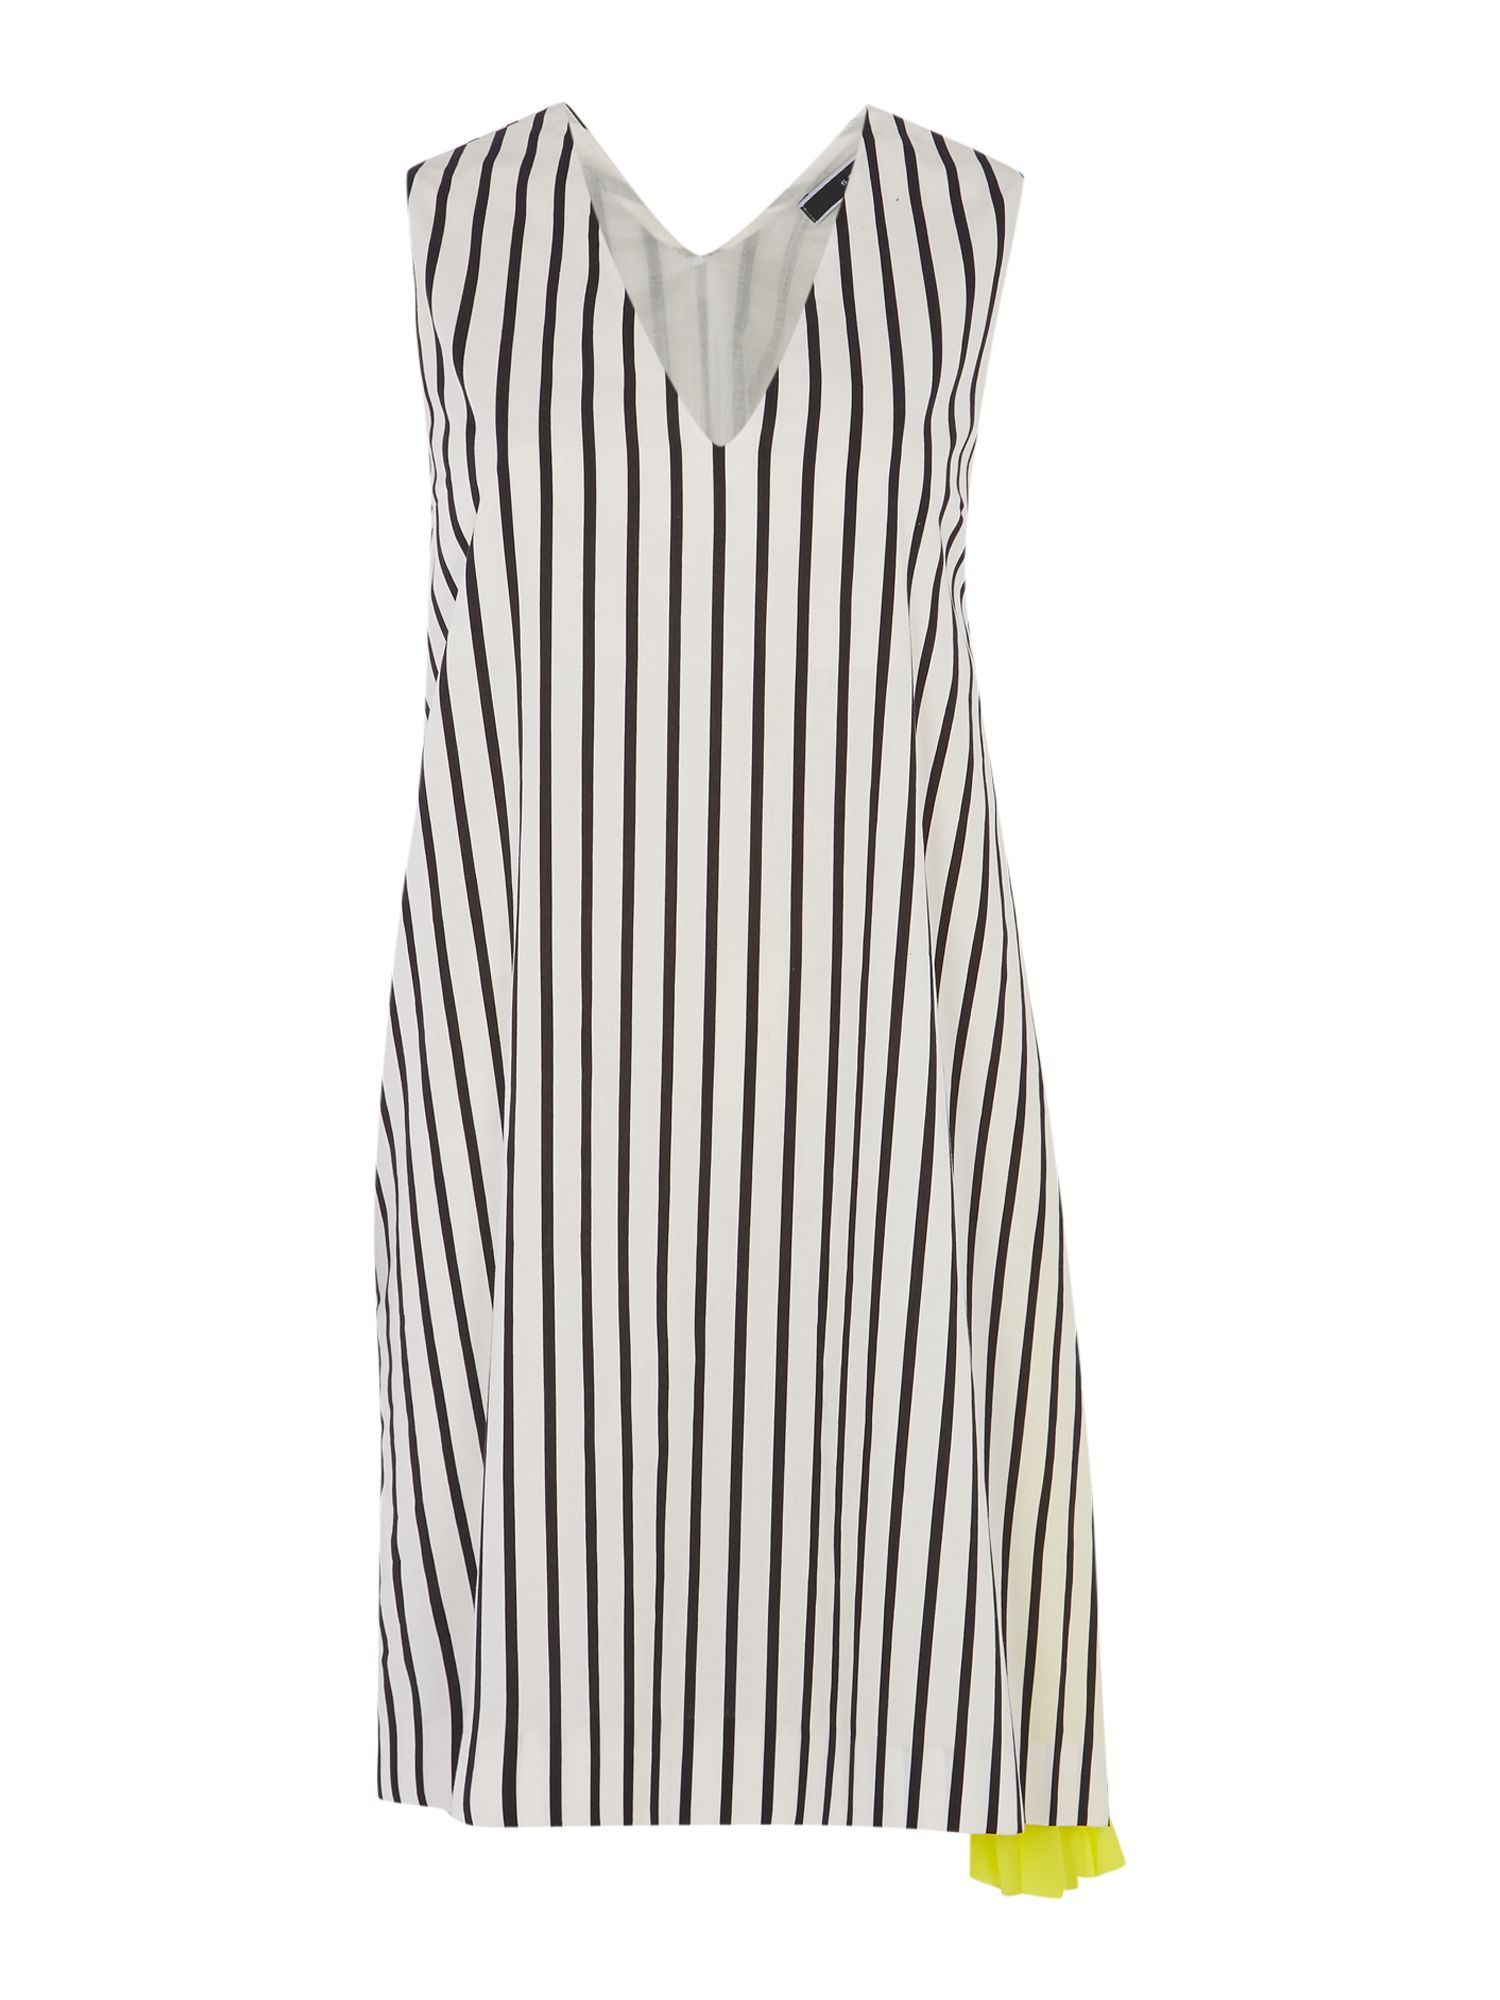 Sportmax Code Sportmax Code Pamir striped V neck dress with side pleat detail, White